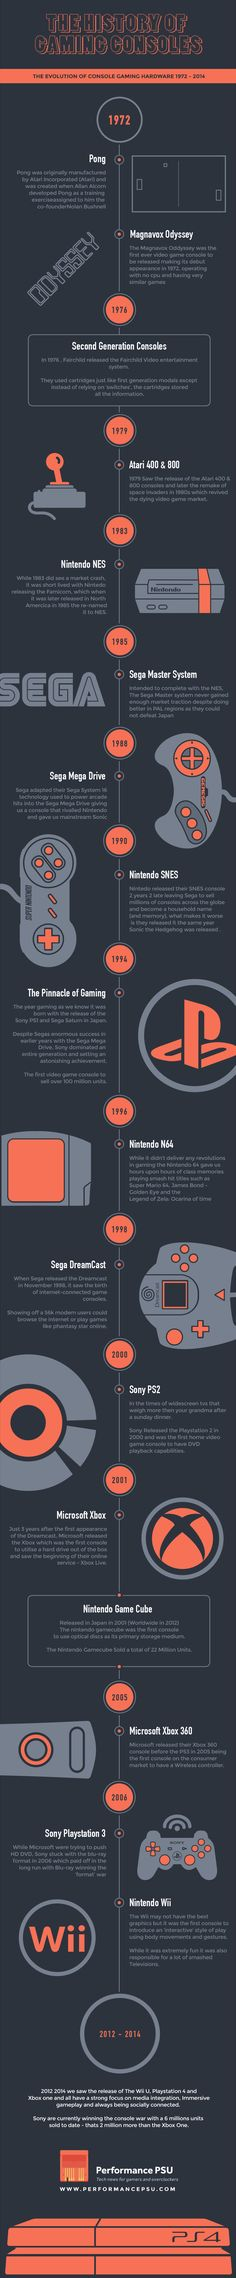 The History of Video Gaming Consoles 1972 – 2014